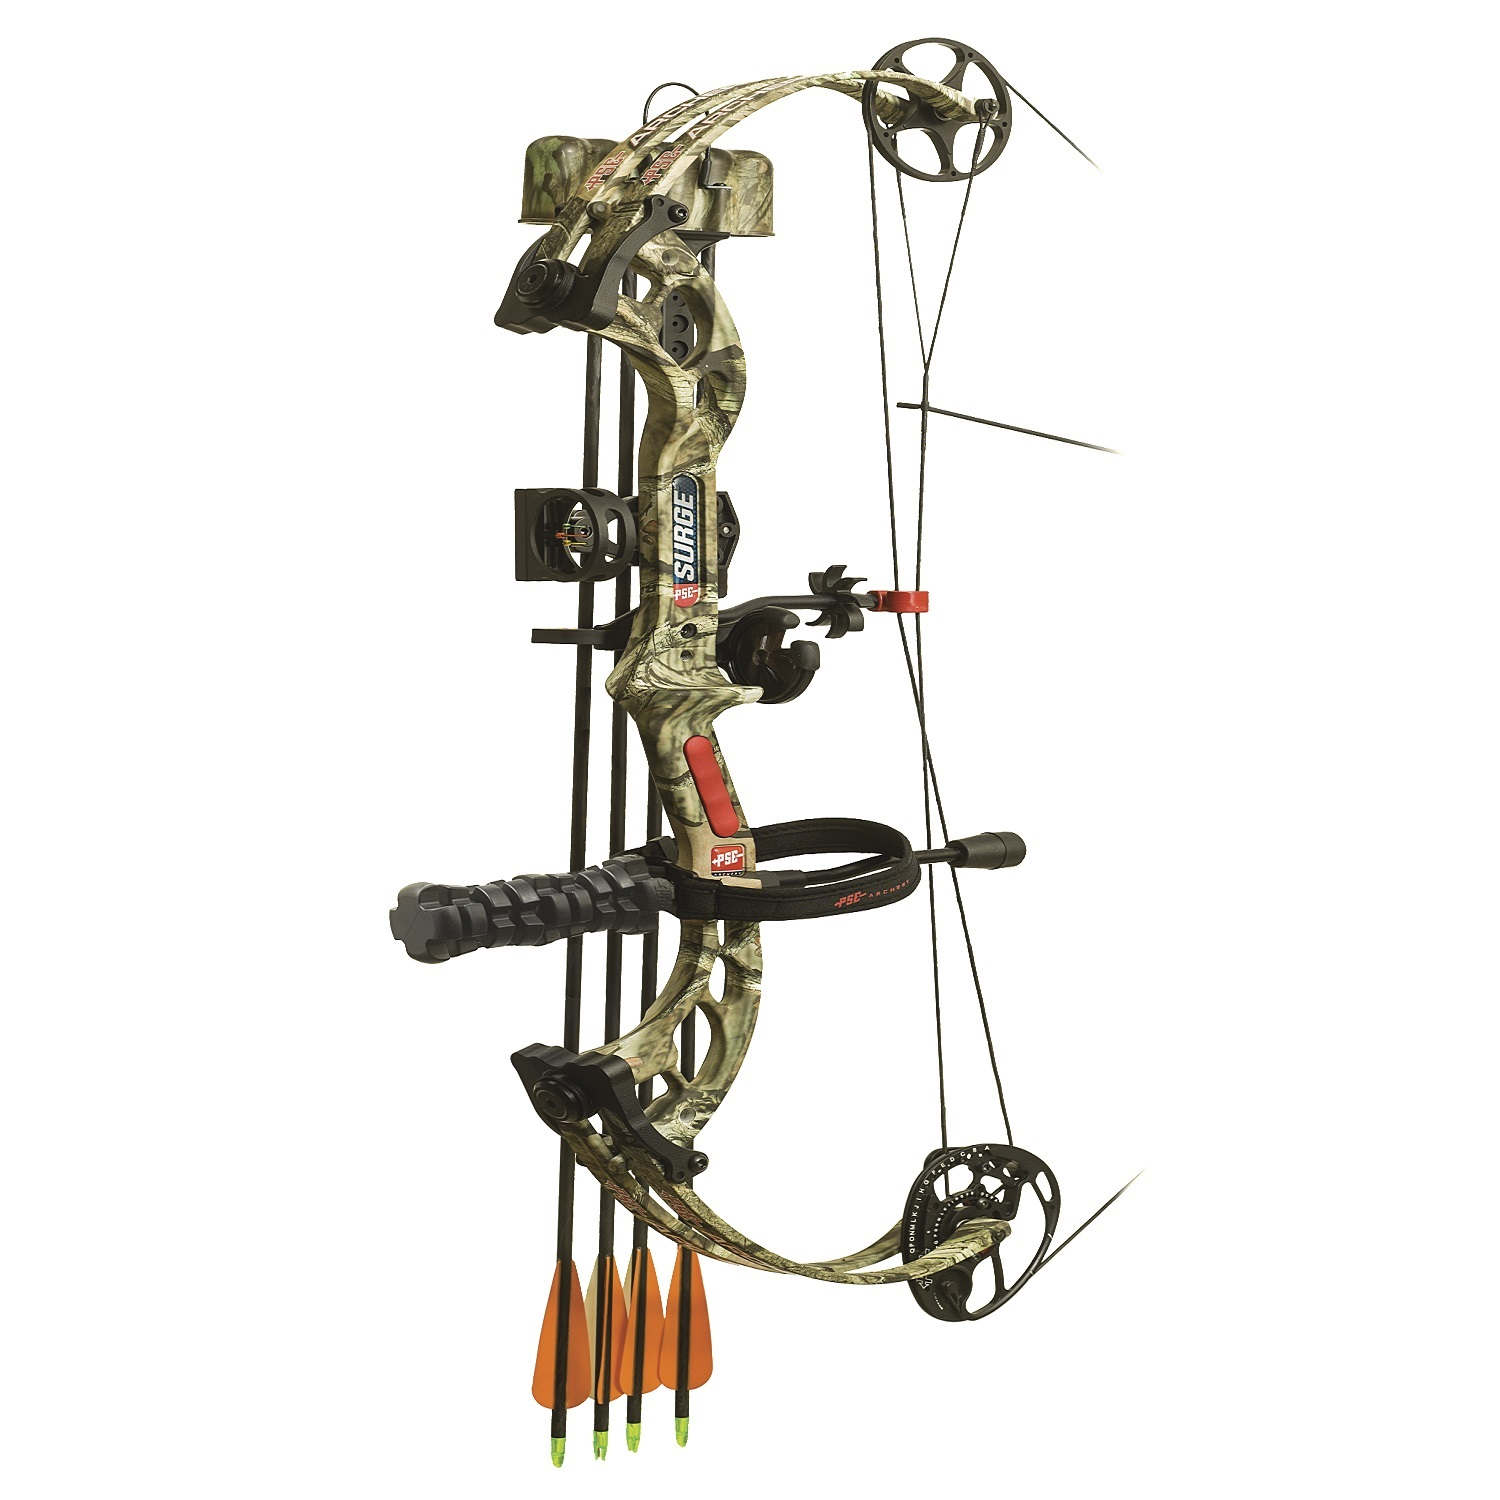 Pse Ready To Shoot Stinger X Bow Rh Break Up Infinity 60